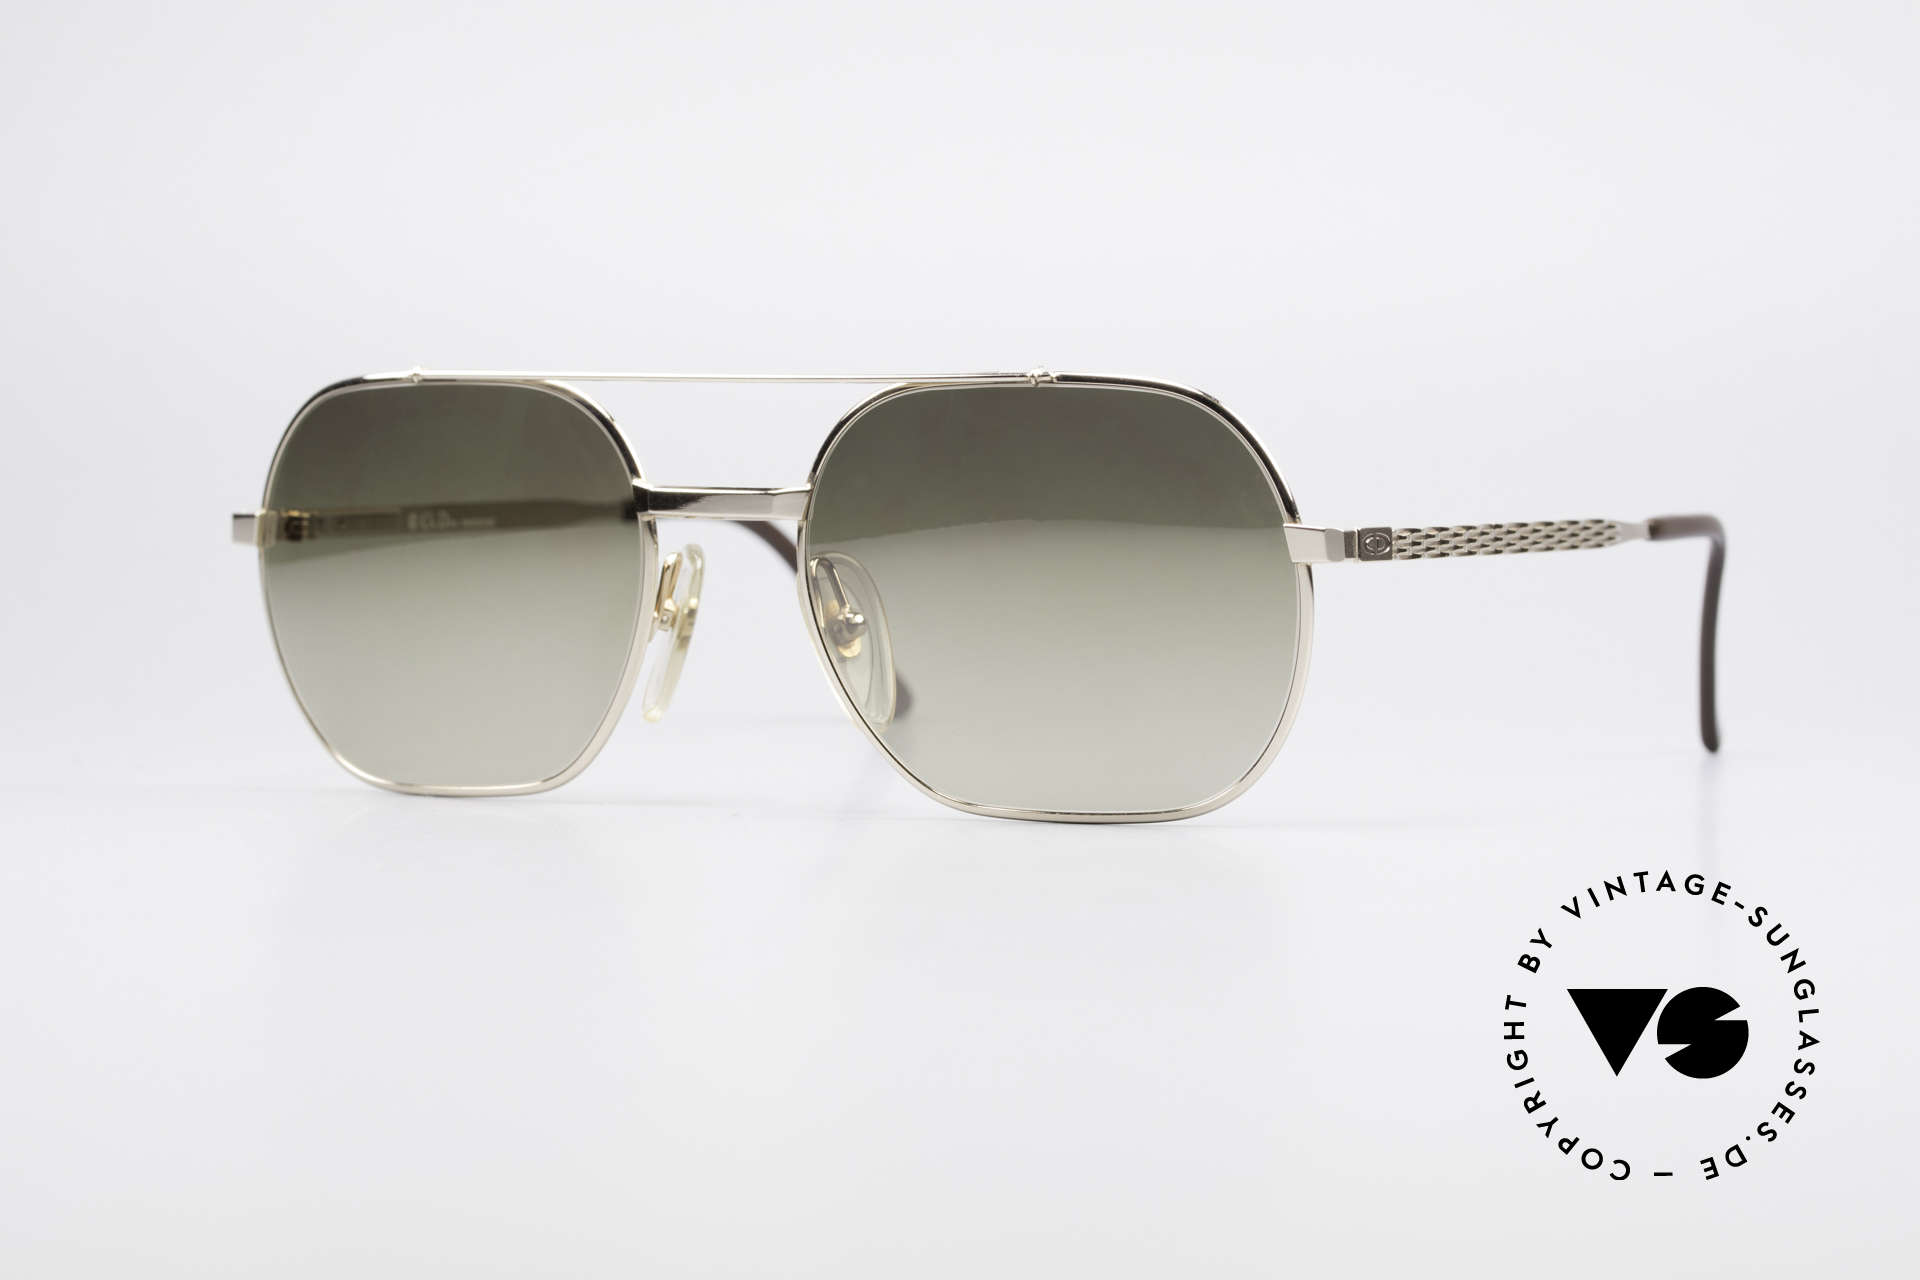 Christian Dior 2357 Legendary Monsieur Series, Christian Dior vintage 'Monsieur' designer sunglasses, Made for Men